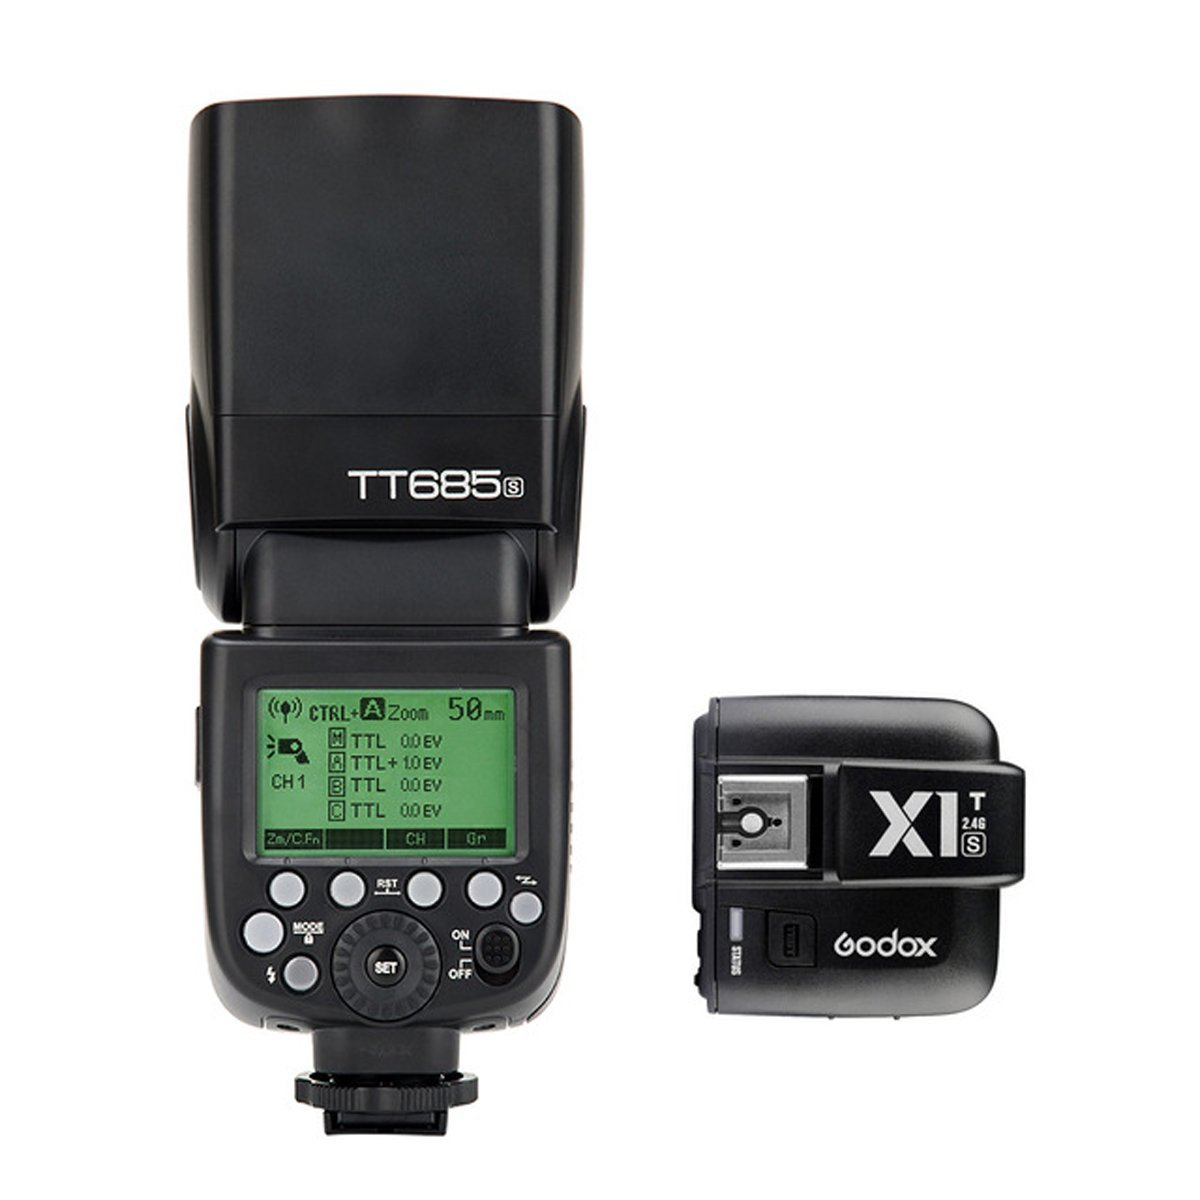 Godox TT685S 2.4G HSS TTL GN60 Flash Speedlite + X1T-S Wireless Trigger Transmitter for Sony